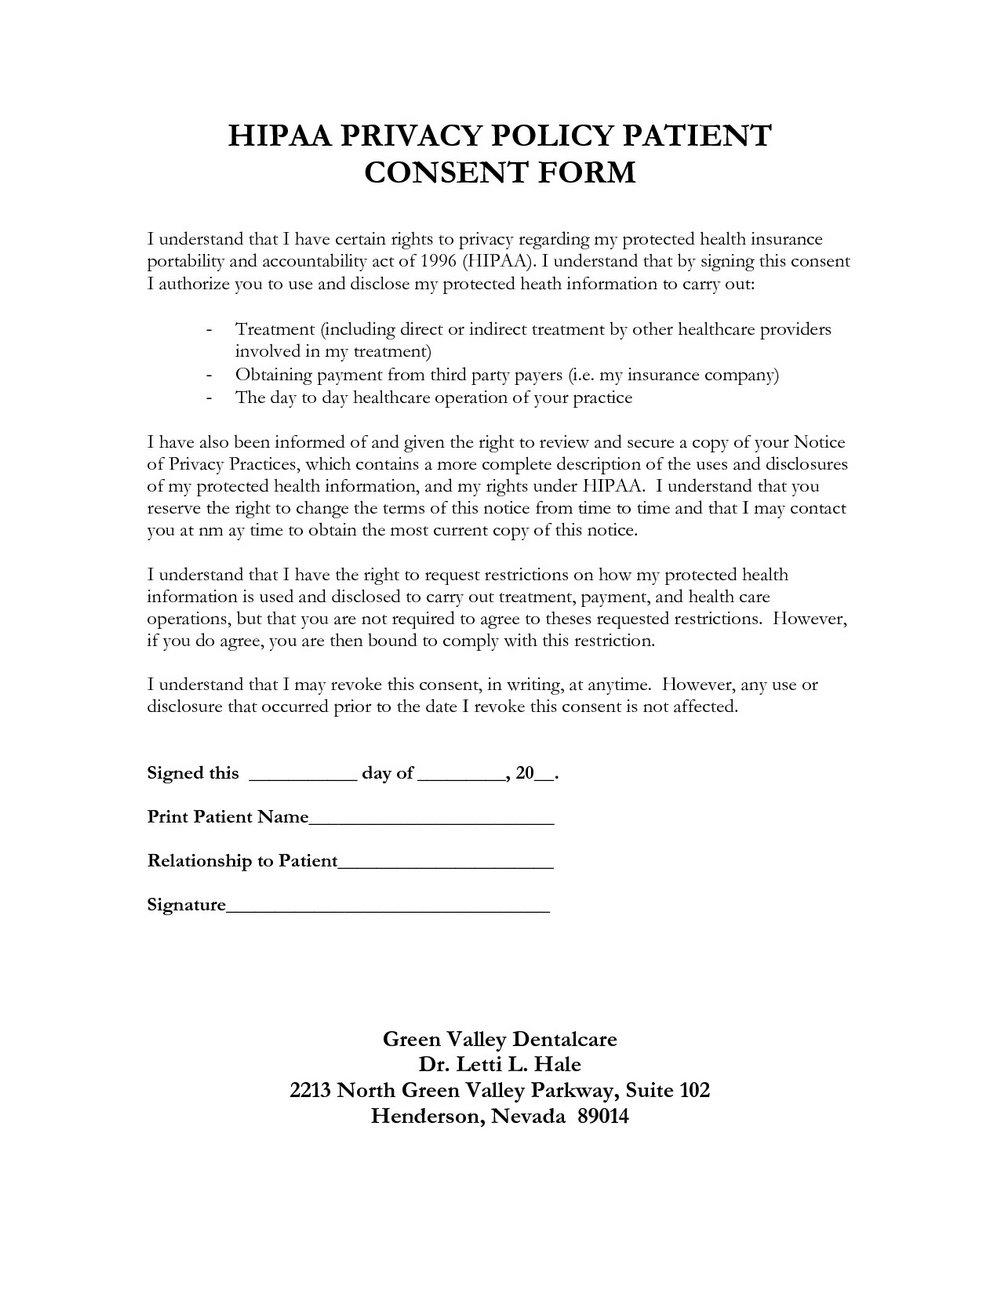 Free Printable Hipaa Privacy Policy Template